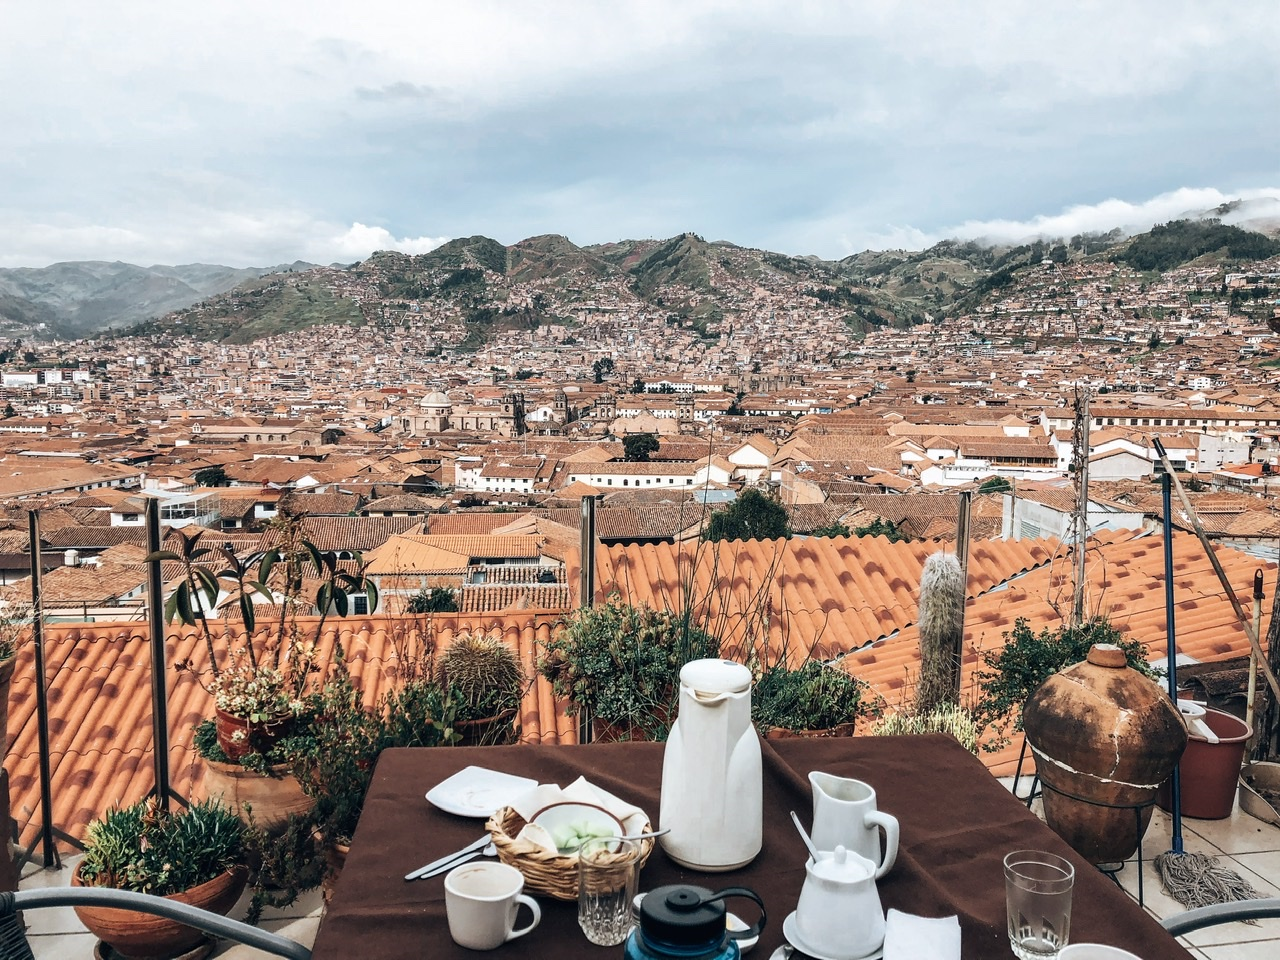 Views overlooking the city of Cusco from our final night at our airbnb in Peru